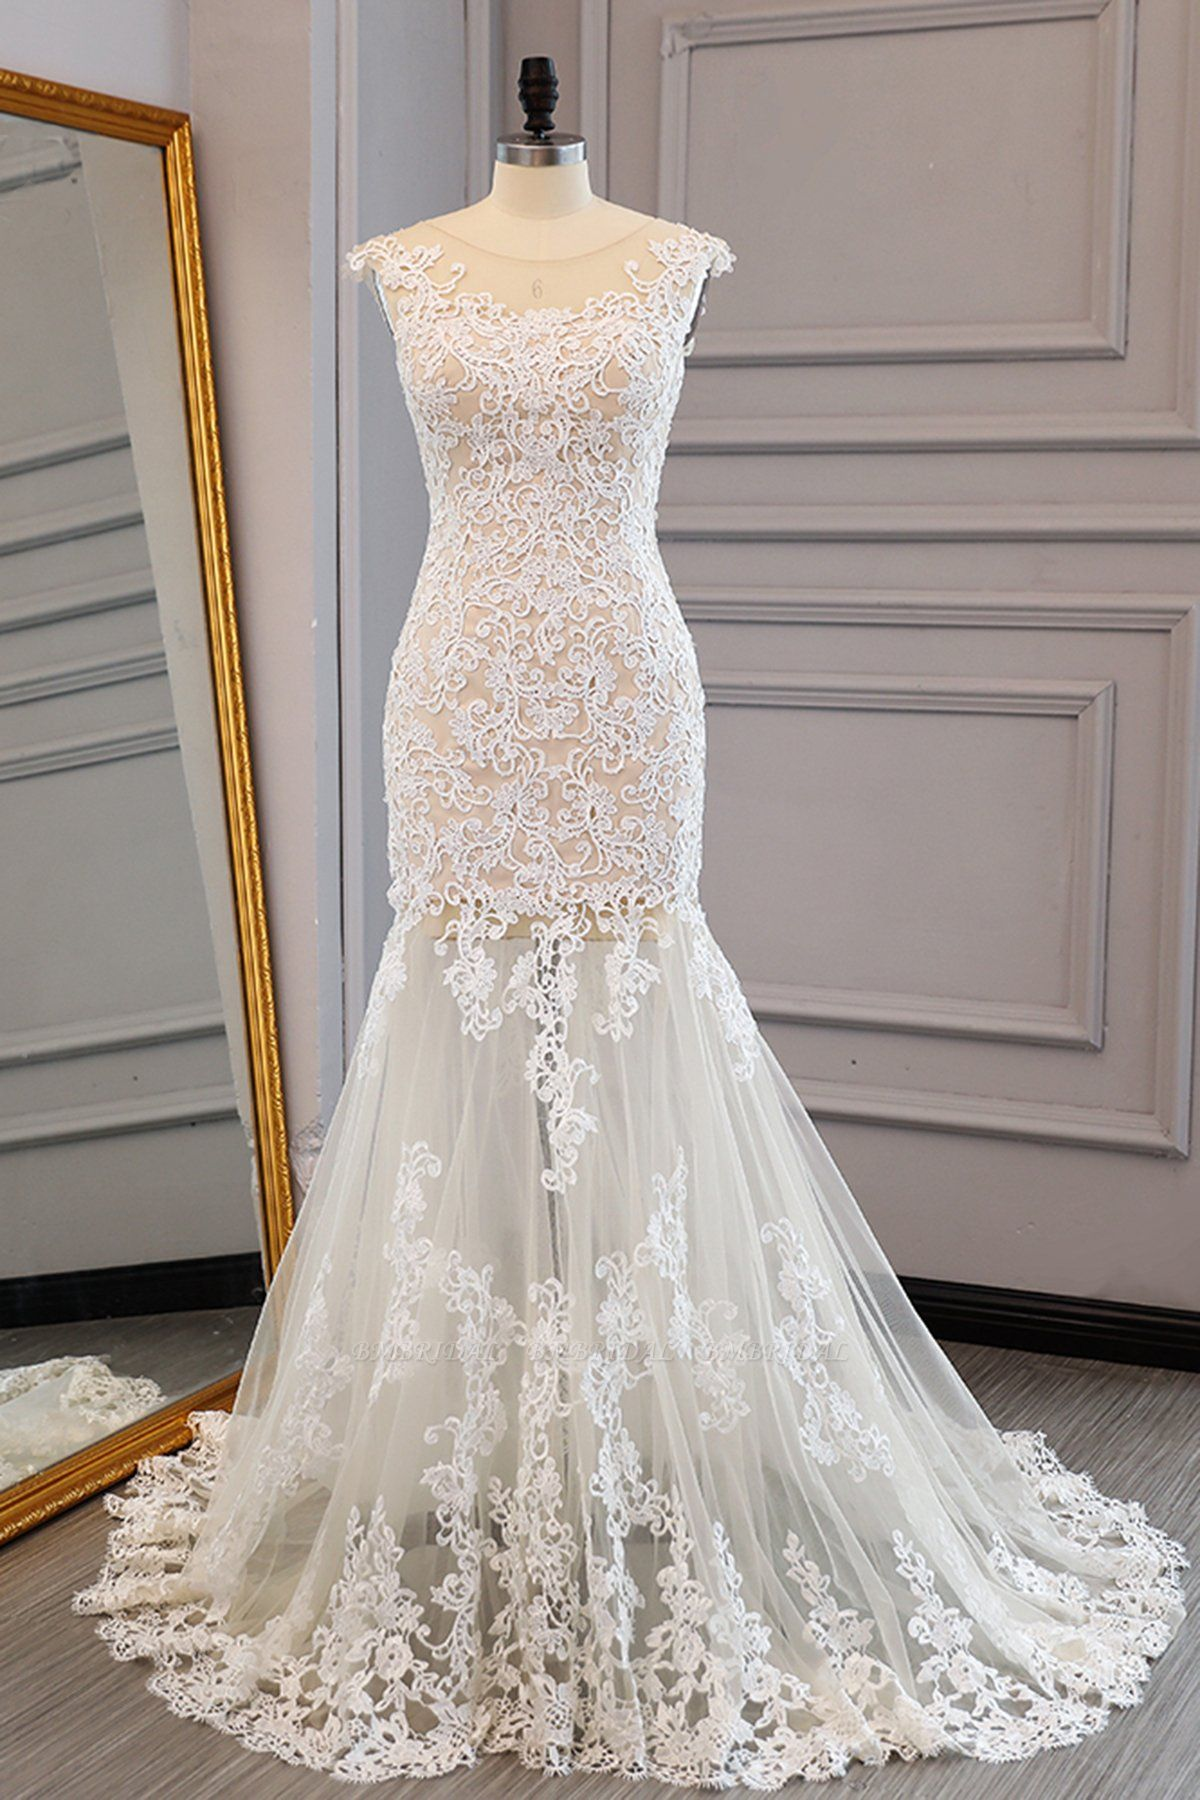 Elegant Ivory Tulle Long Mermaid Wedding Dress Lace Appliques Sleeveless Bridal Gowns On Sale